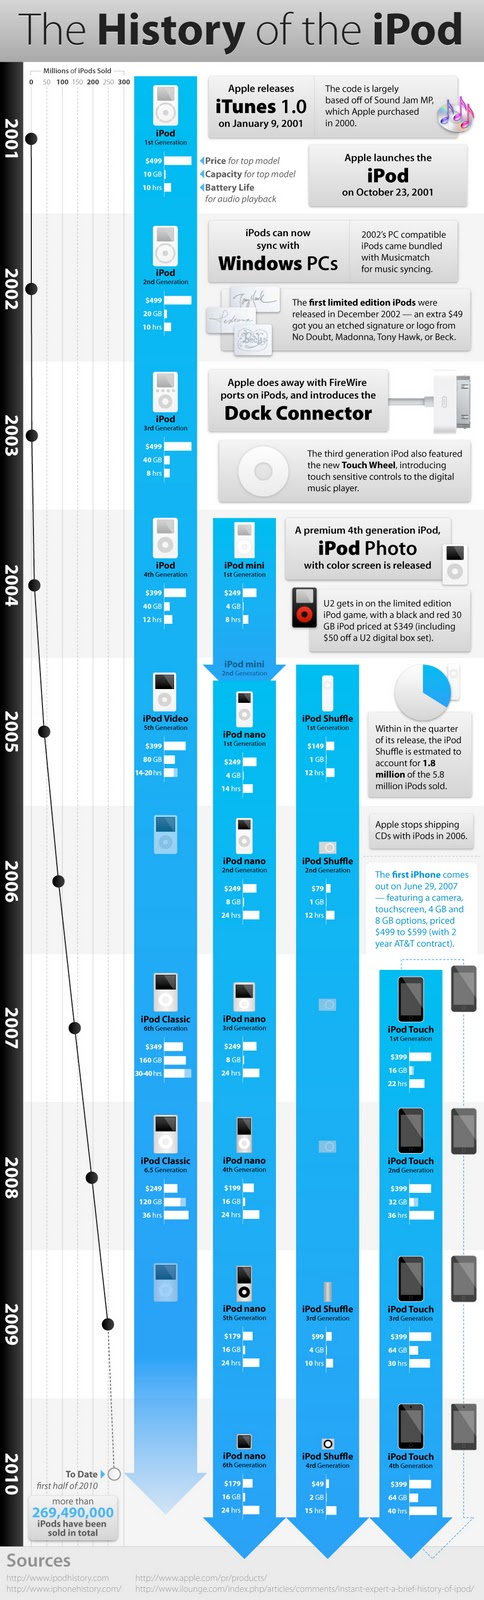 apple history-of-the-ipod-timeline